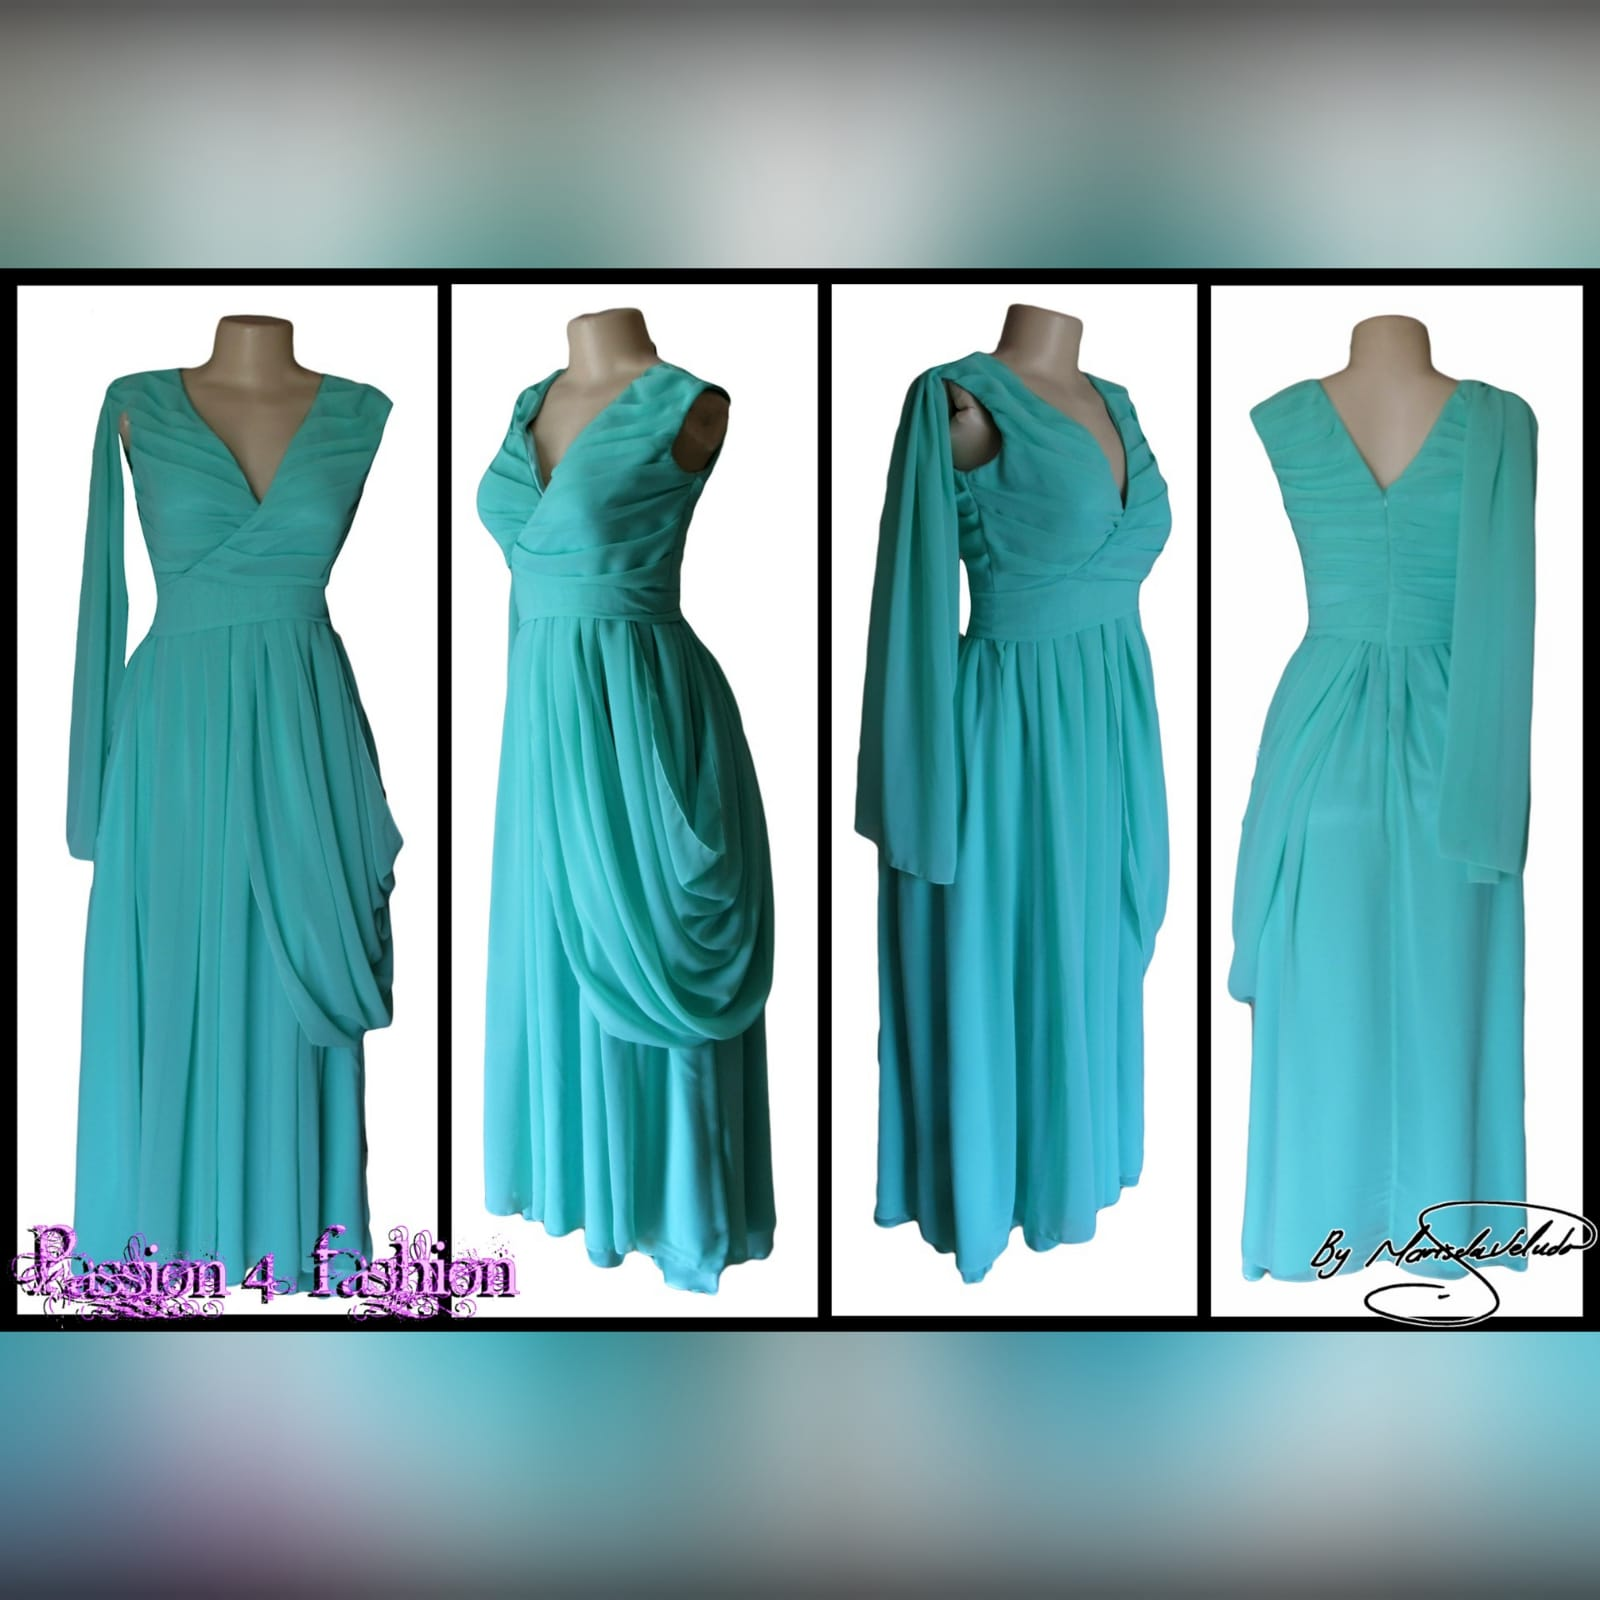 Mint green, long draped mother of the brides dress 6 mint green, long draped mother of the brides dress. With a crossed bust v neckline. Shoulder and hip draping detail.